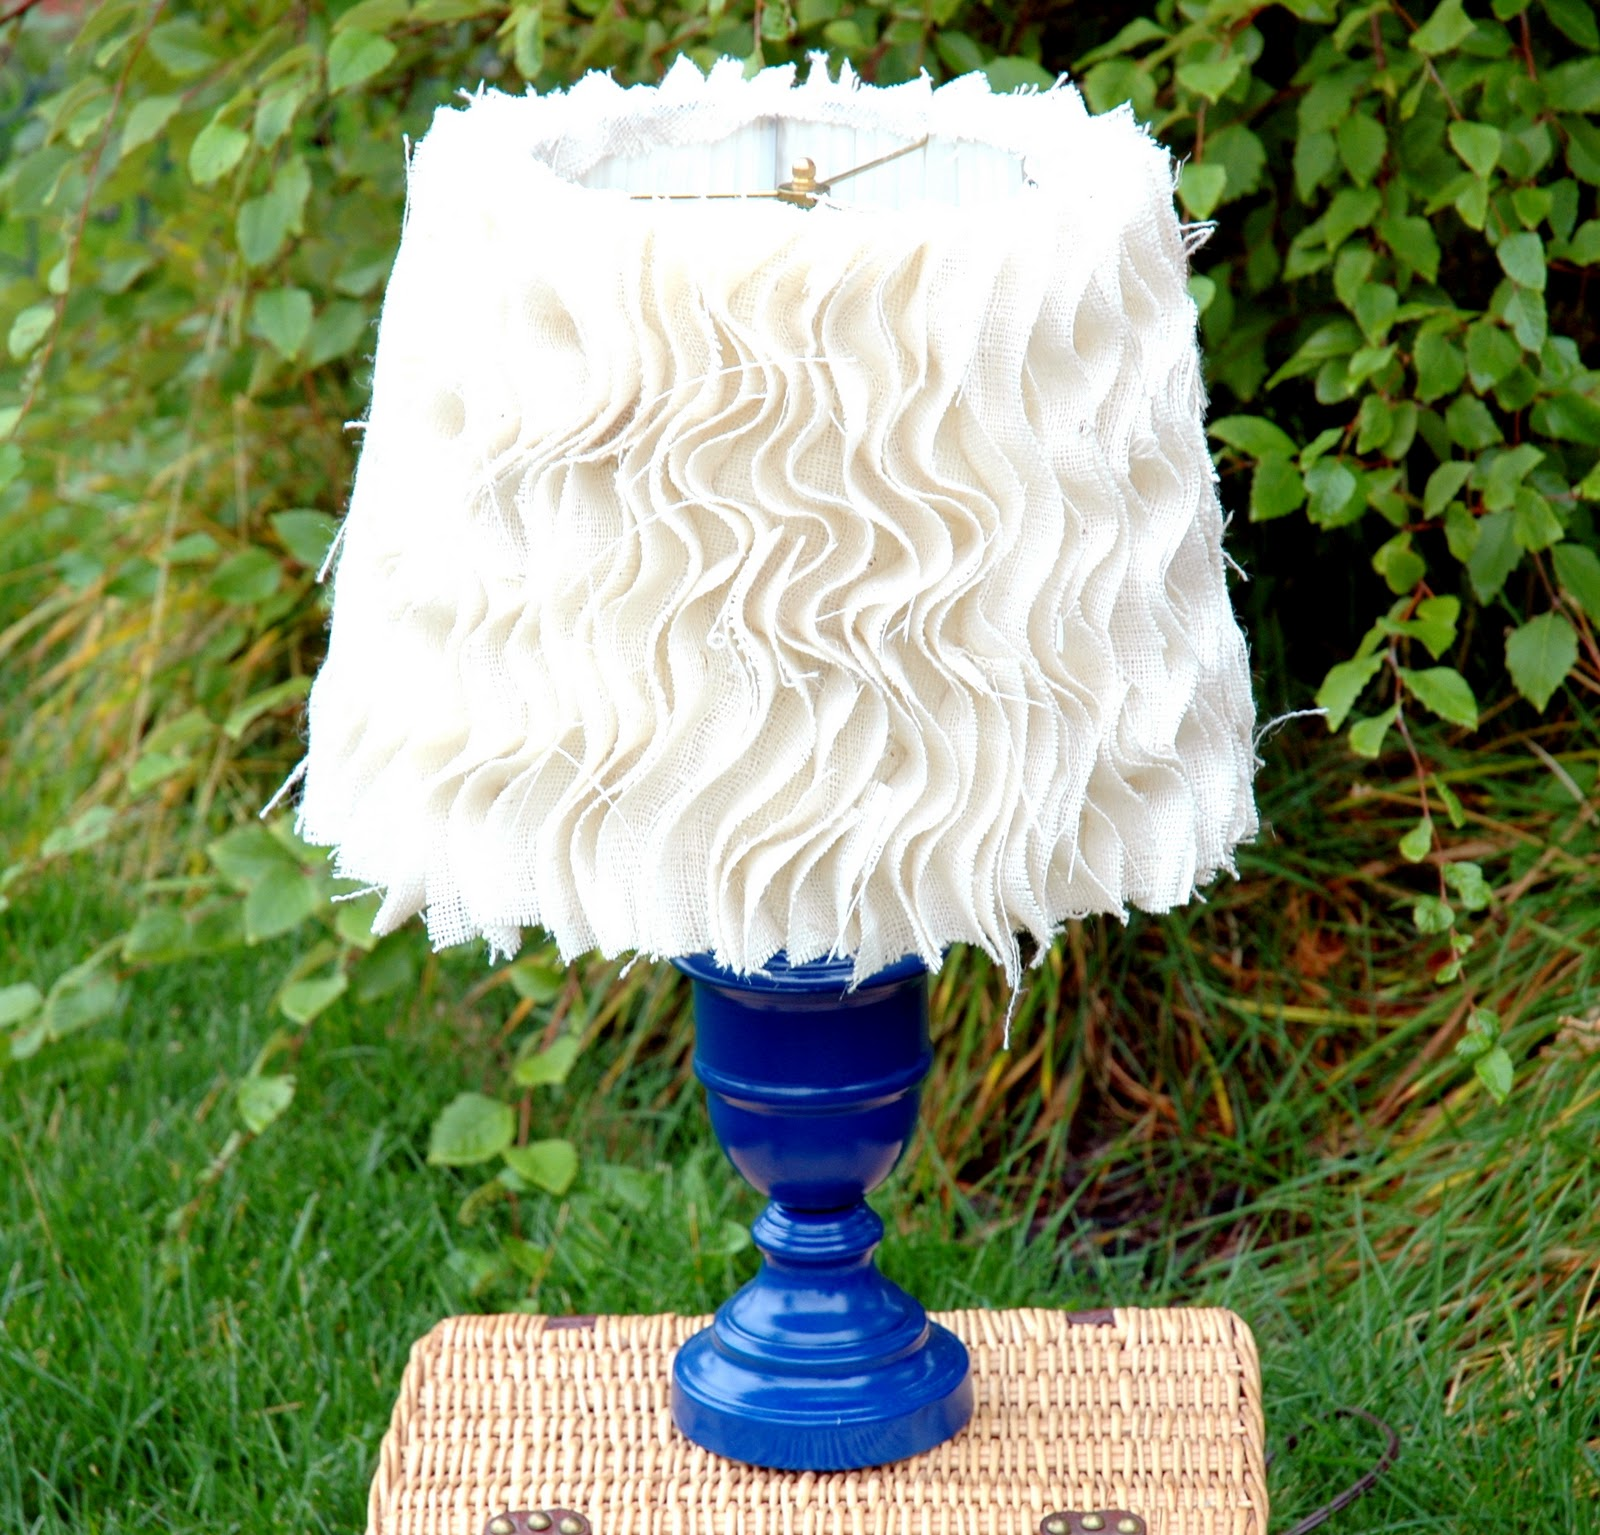 Anthropologie Lamps: The Turquoise Piano: Anthropologie Inspired Lamp Tutorial #2